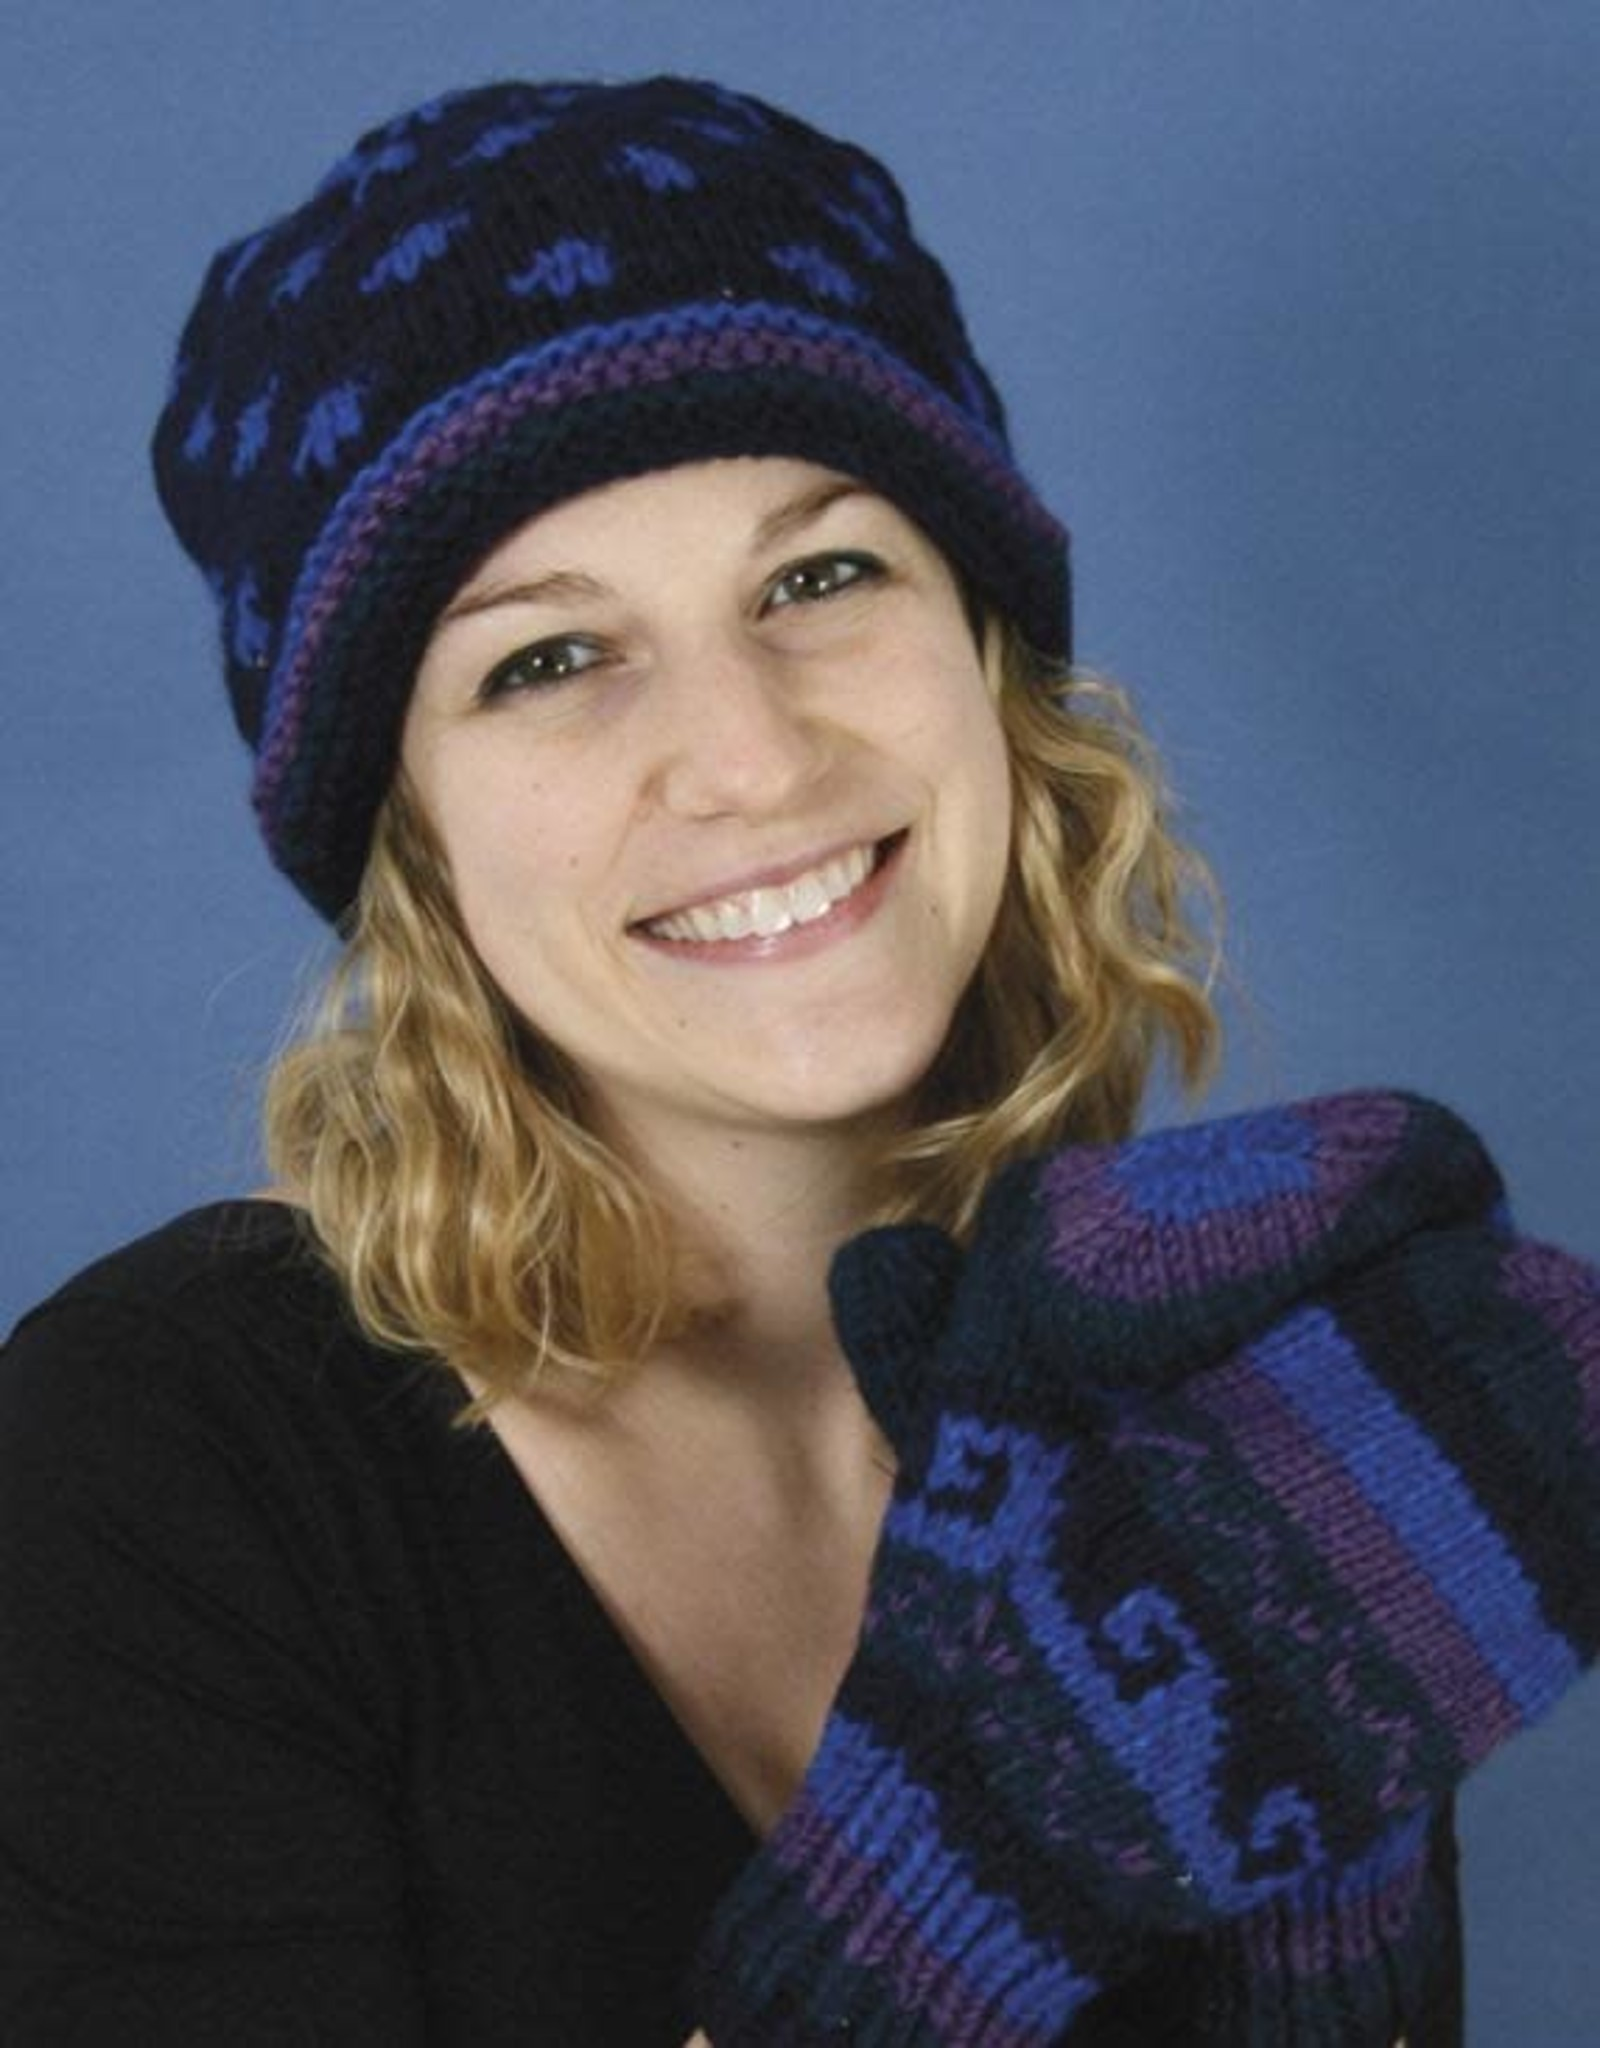 The Sweater Venture Snowfox Fleece Lined Hiking Cap